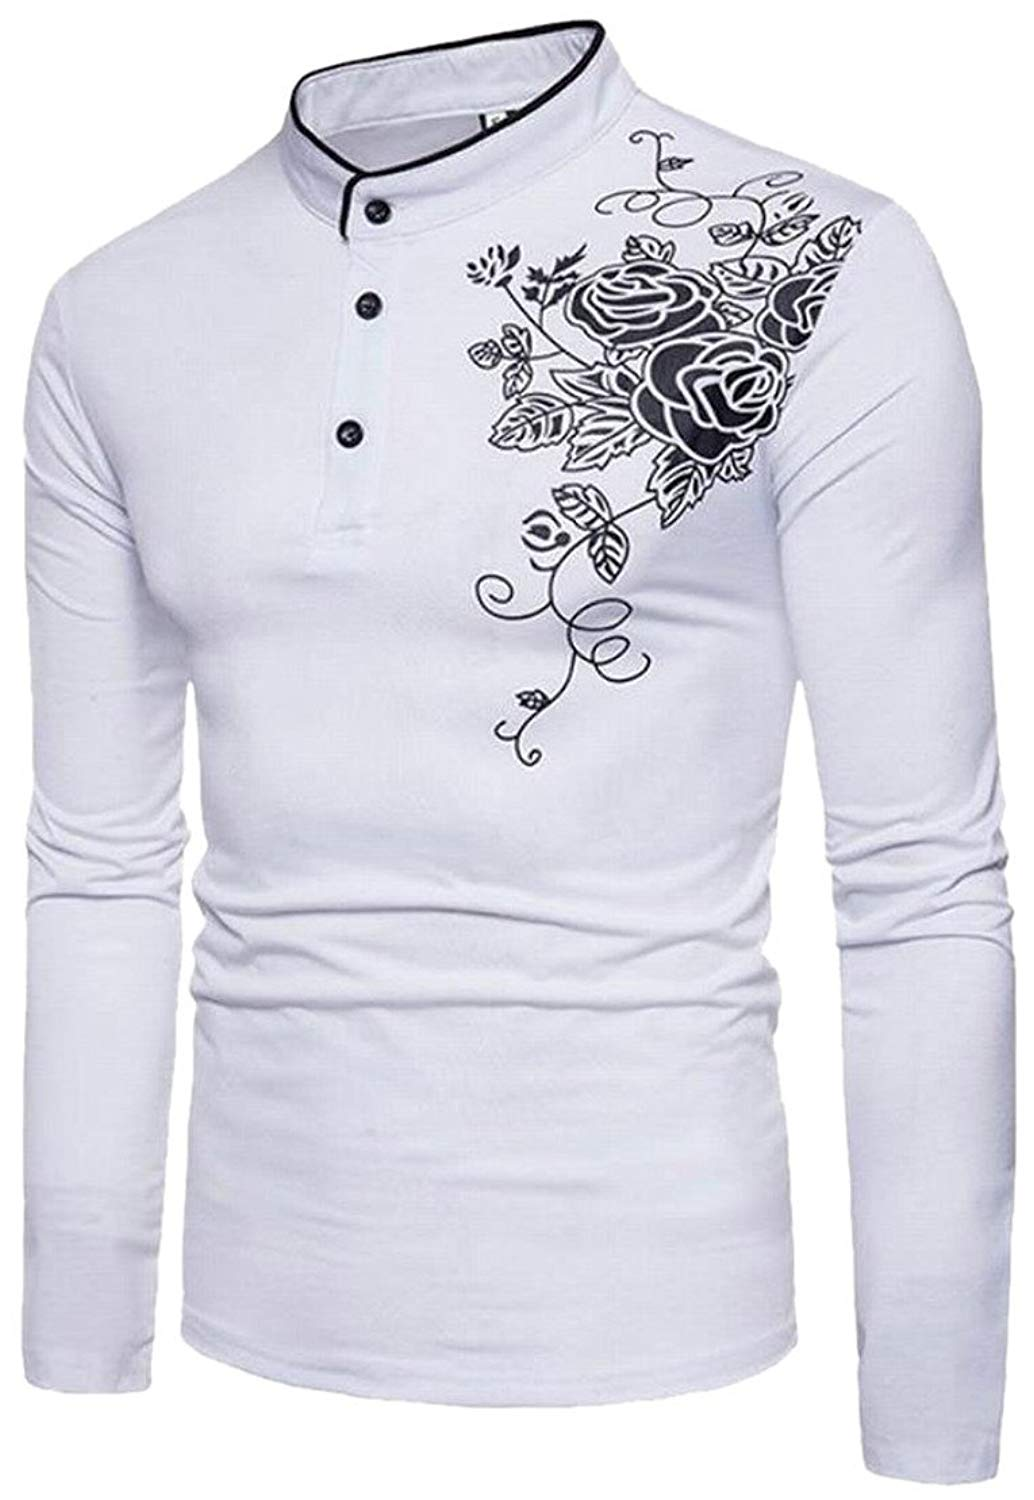 ca2ea250a62 Get Quotations · WSPLYSPJY Men s Henley Collar Long Sleeves T-Shirt  Fashionable Henley Sweatshirts White M